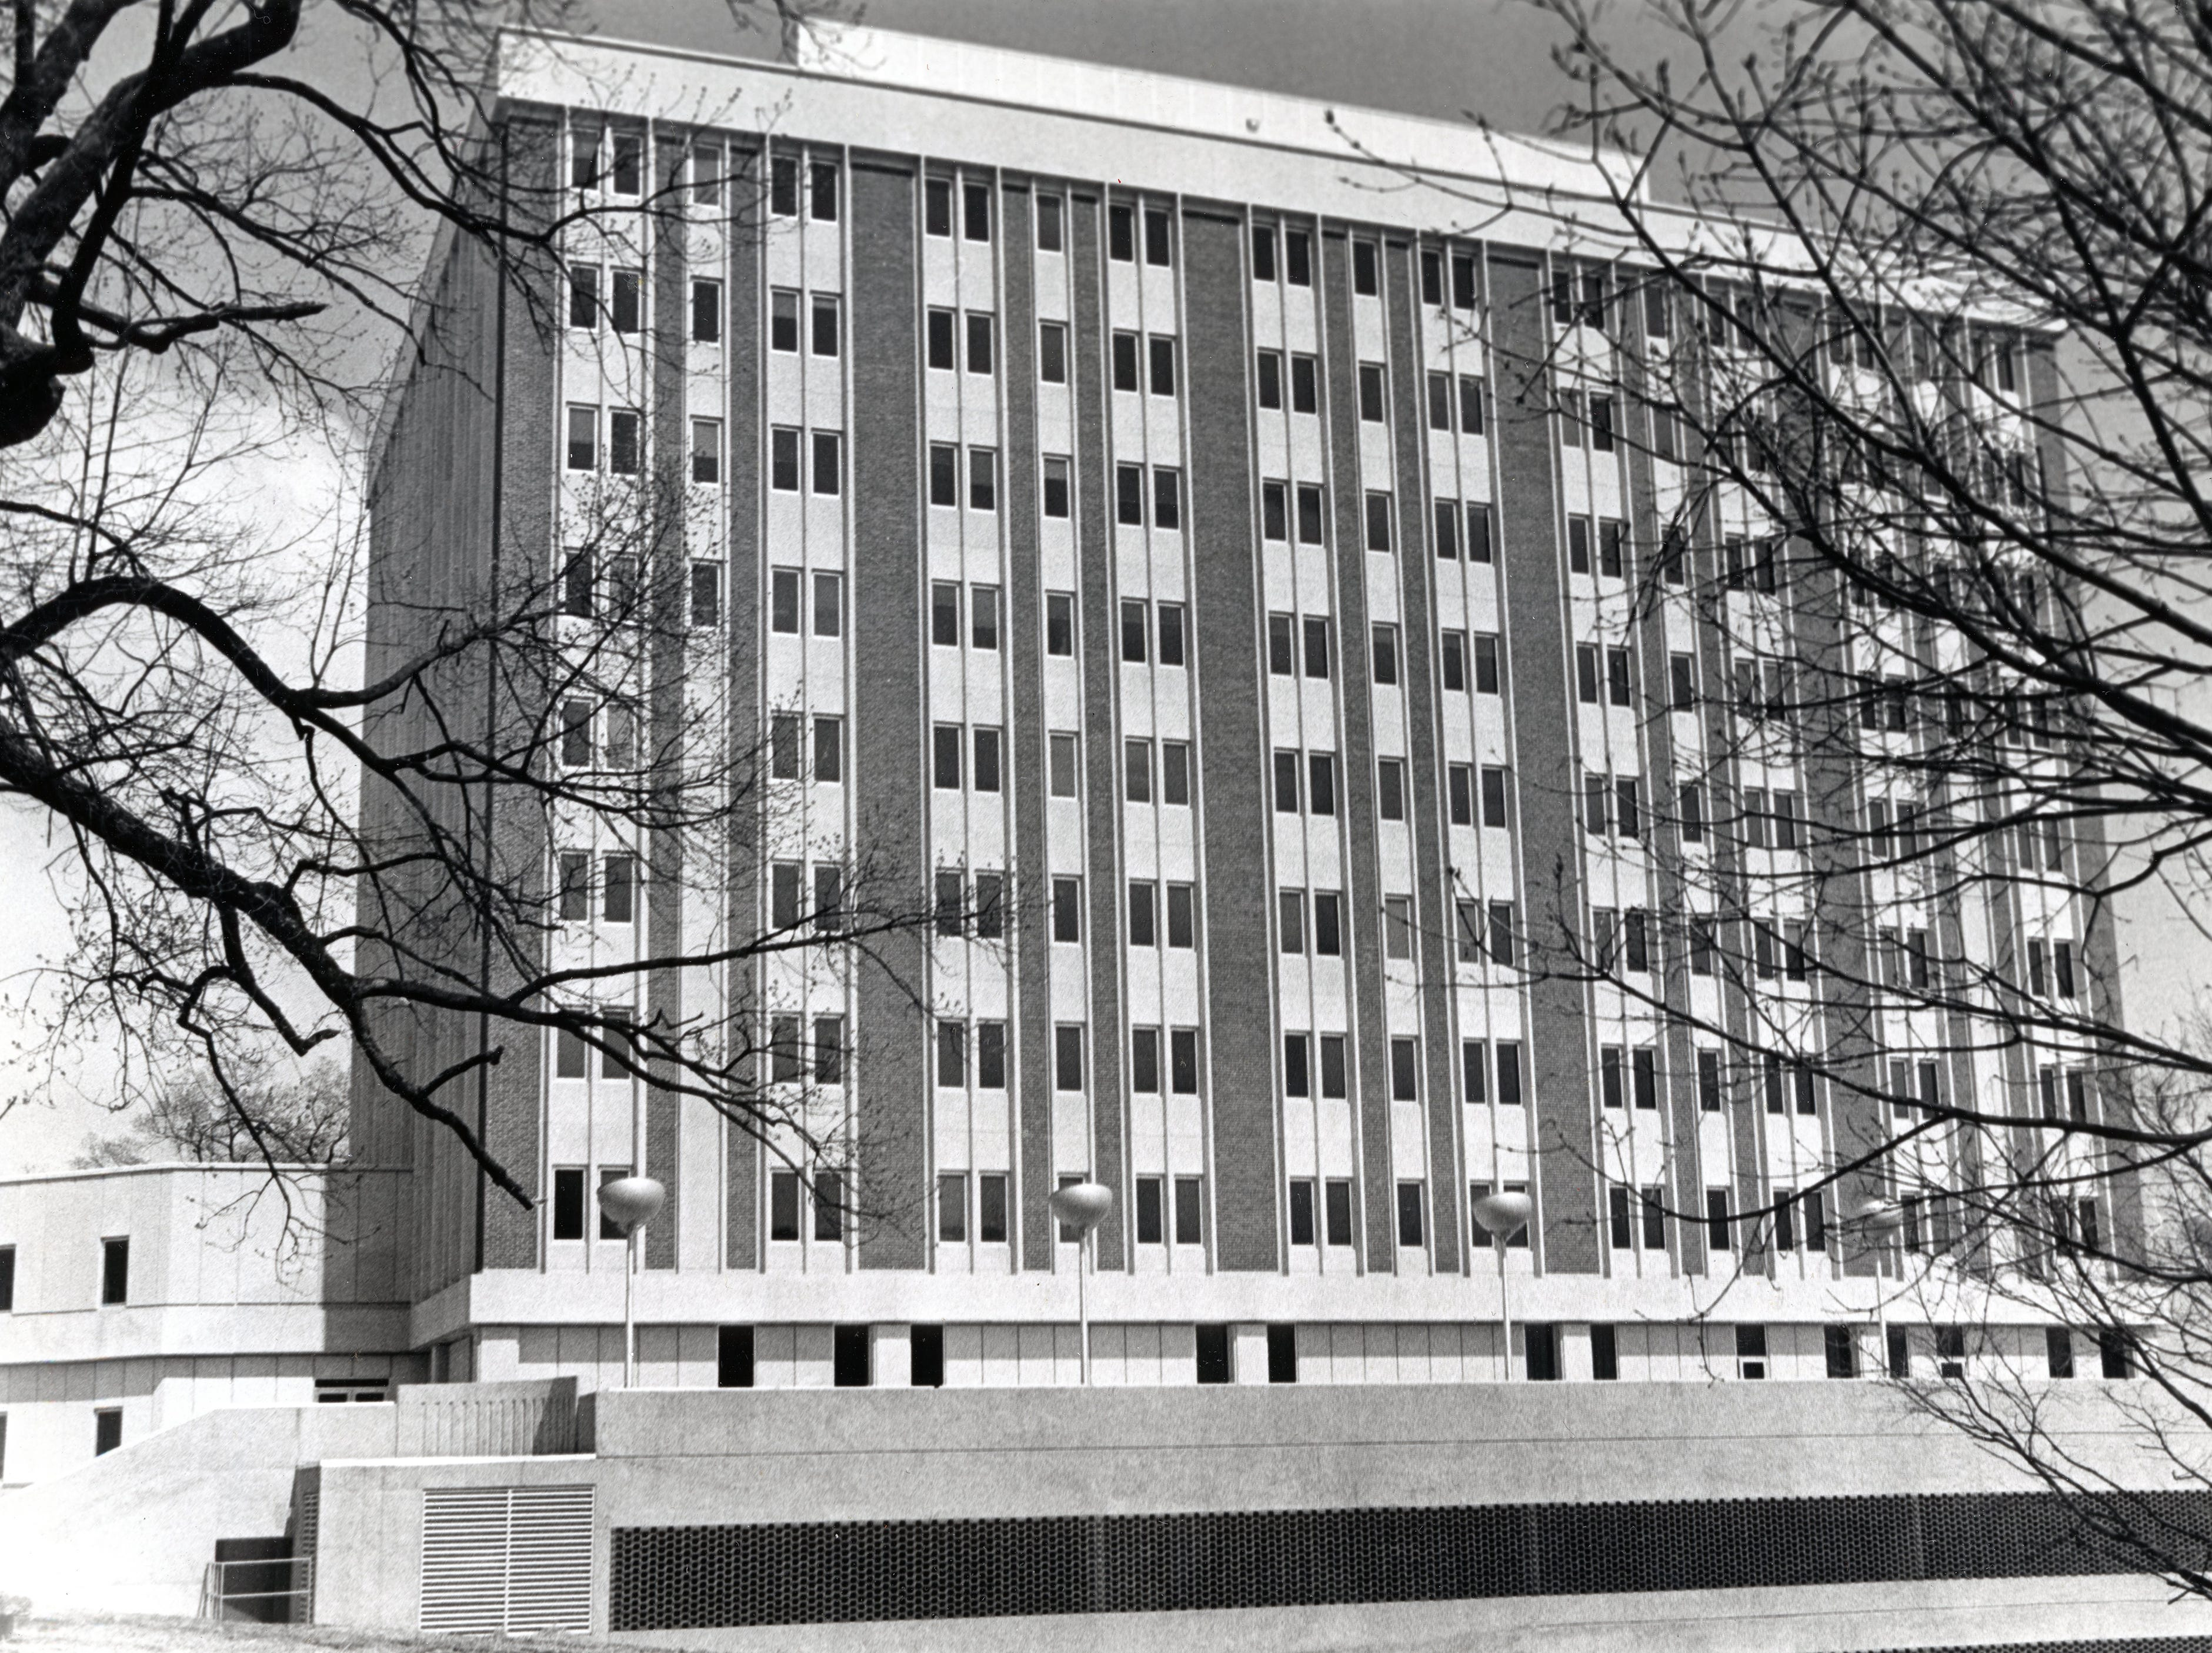 The Magdalene Tower at St. Mary's Medical Tower in April 1972.